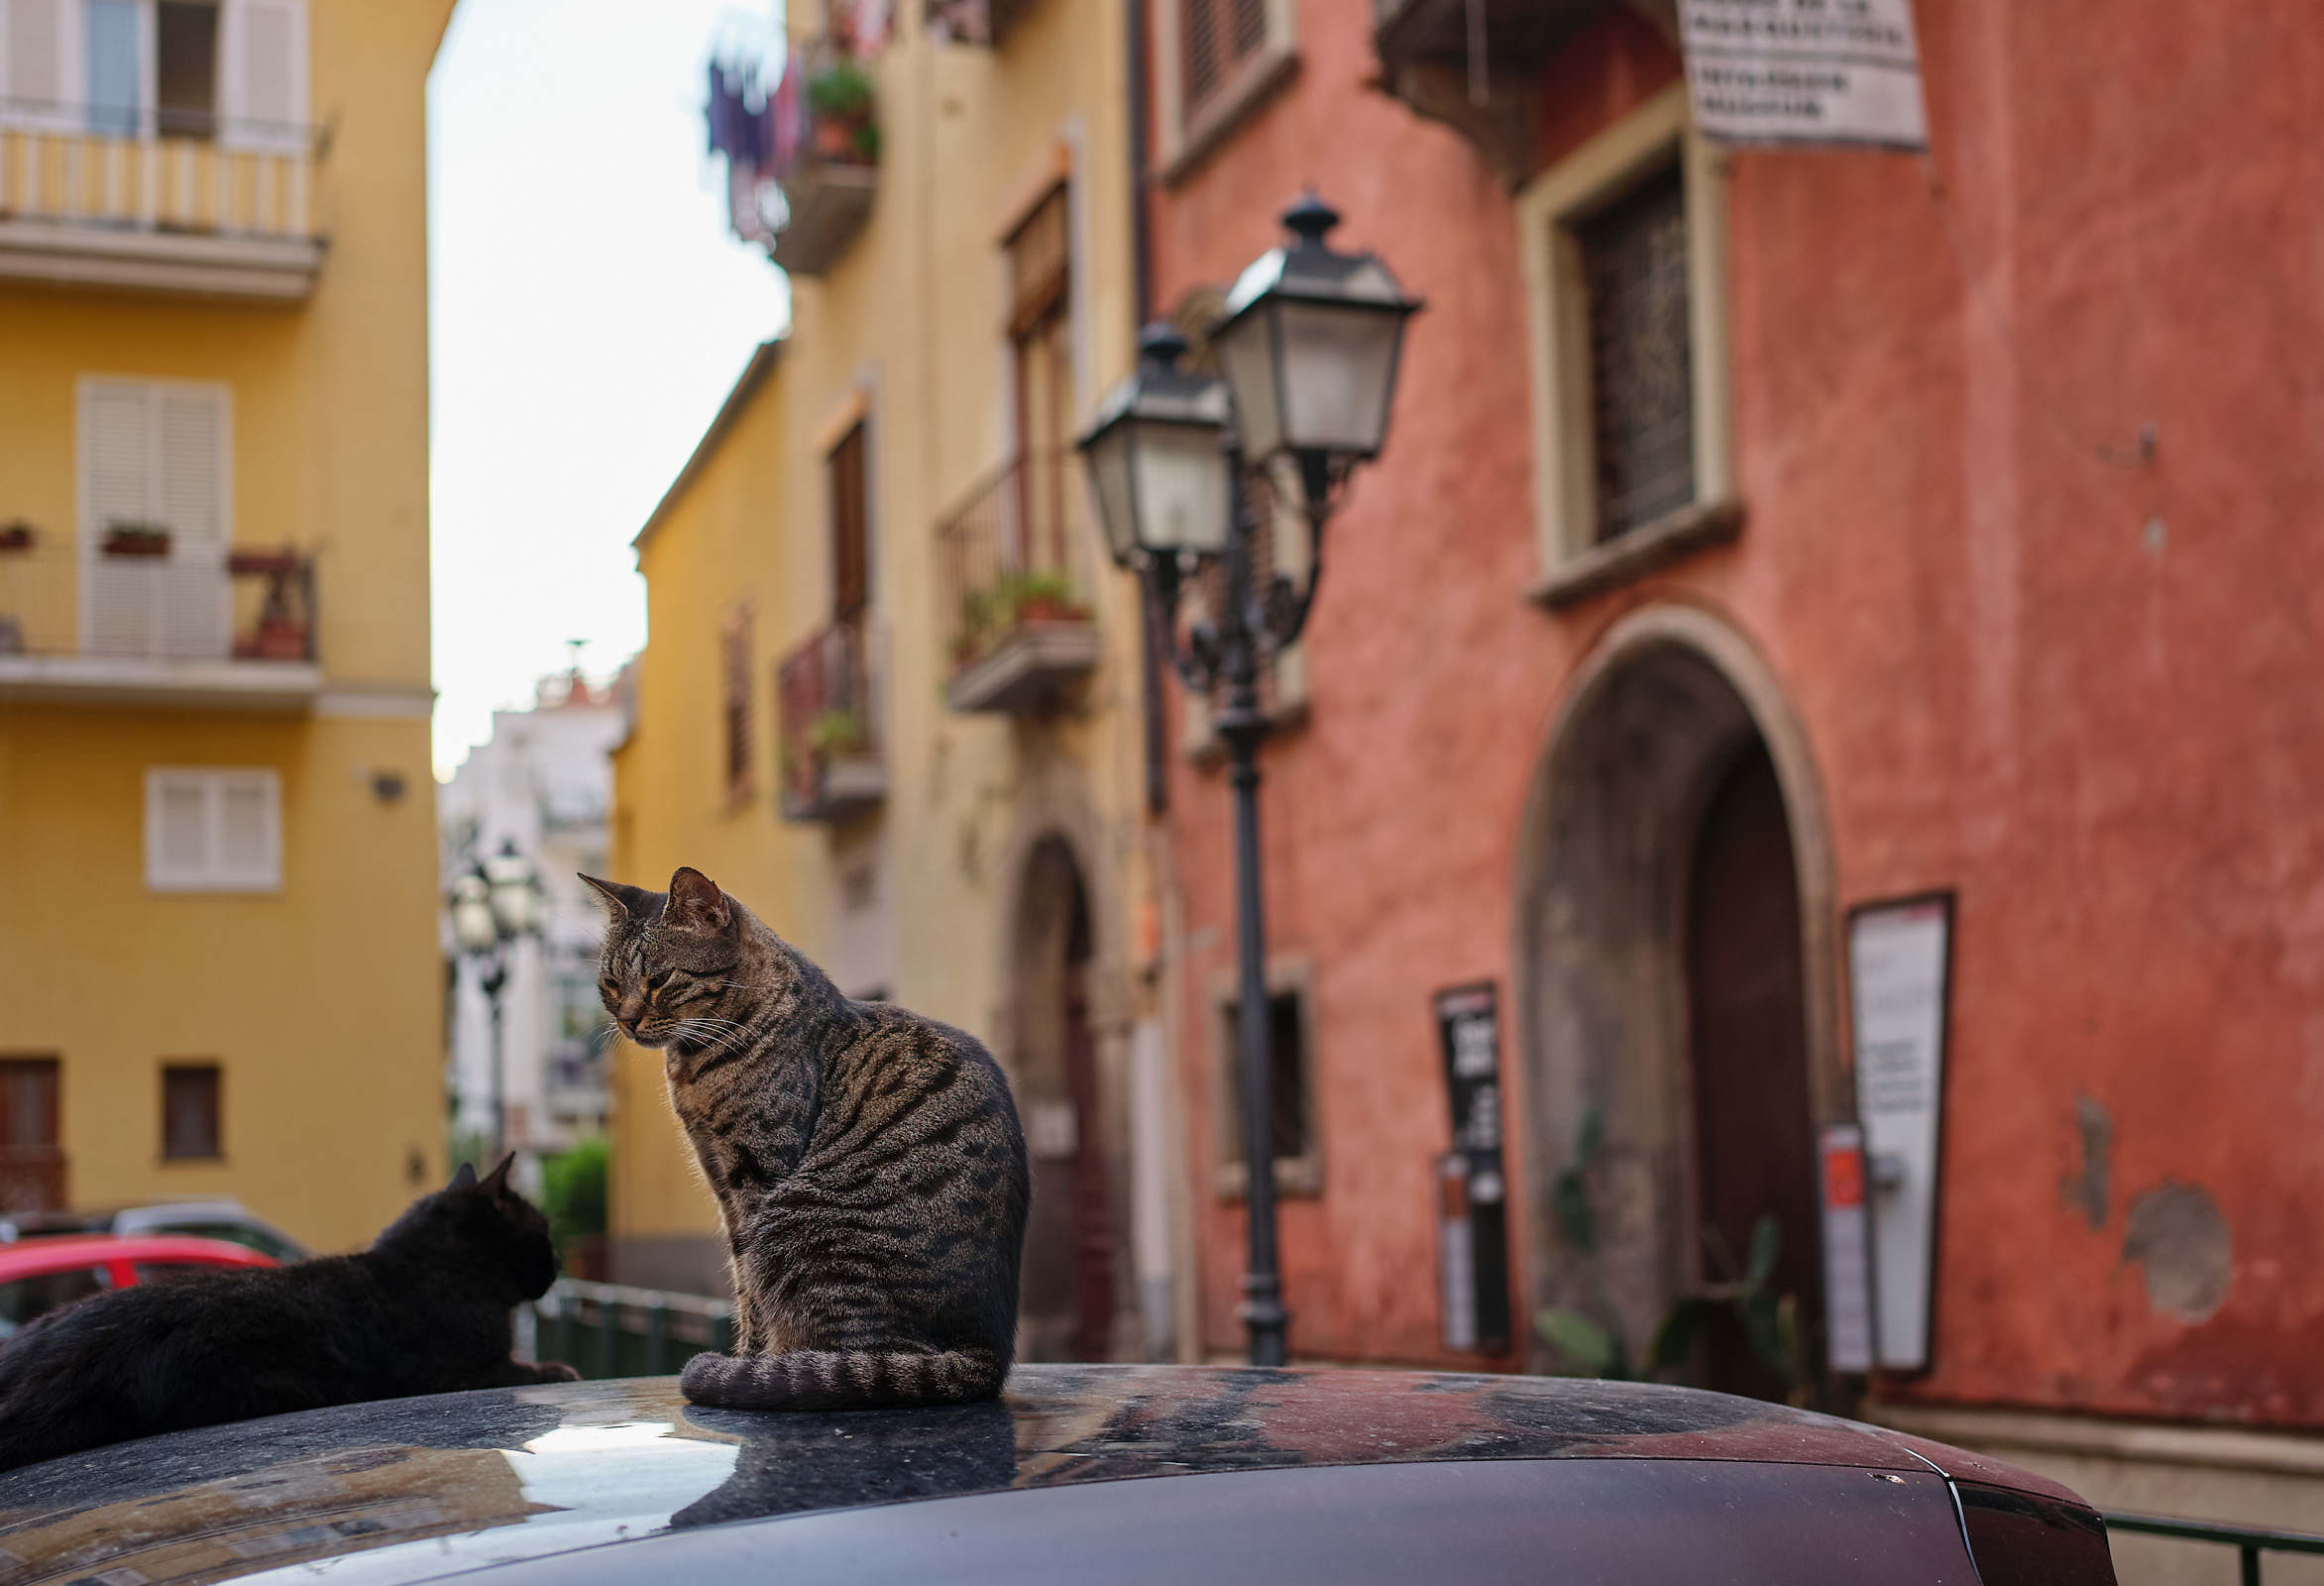 Cat in Sorrento, Italy